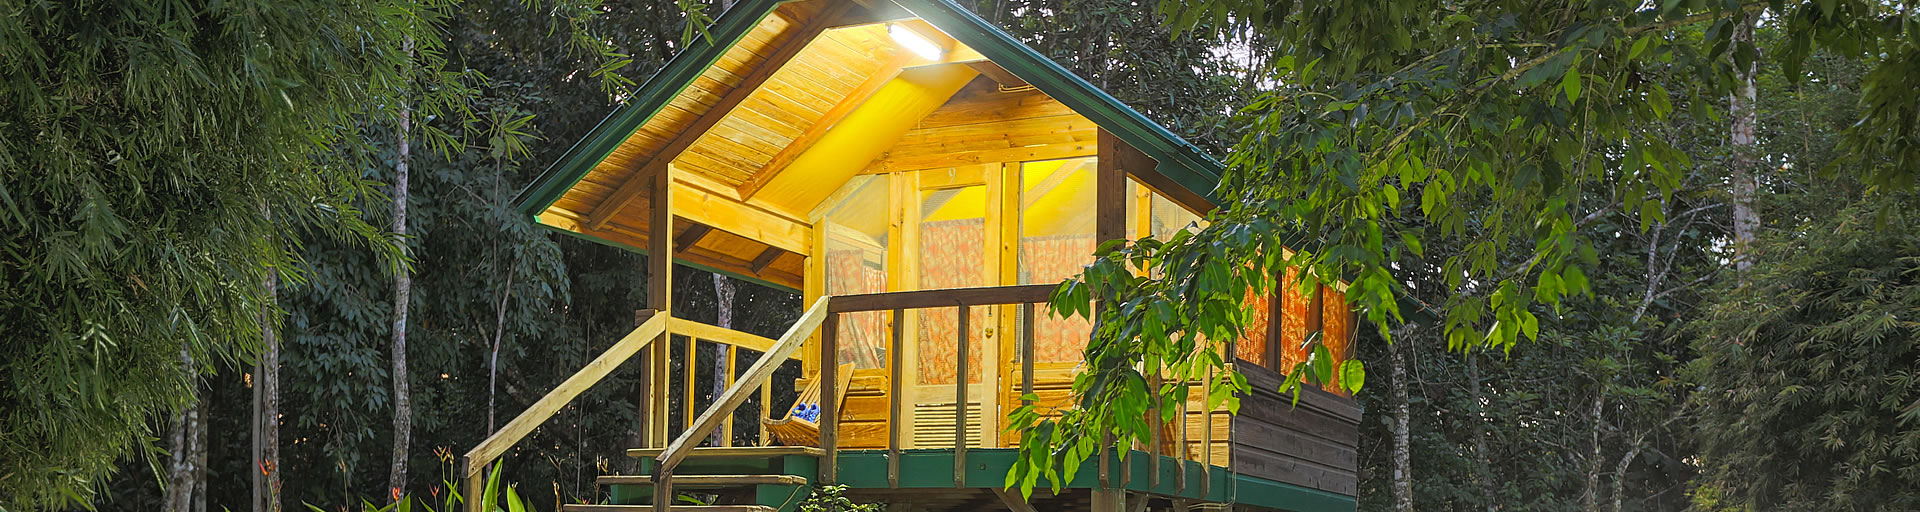 TEC Belize Zoo Forest Cabanas